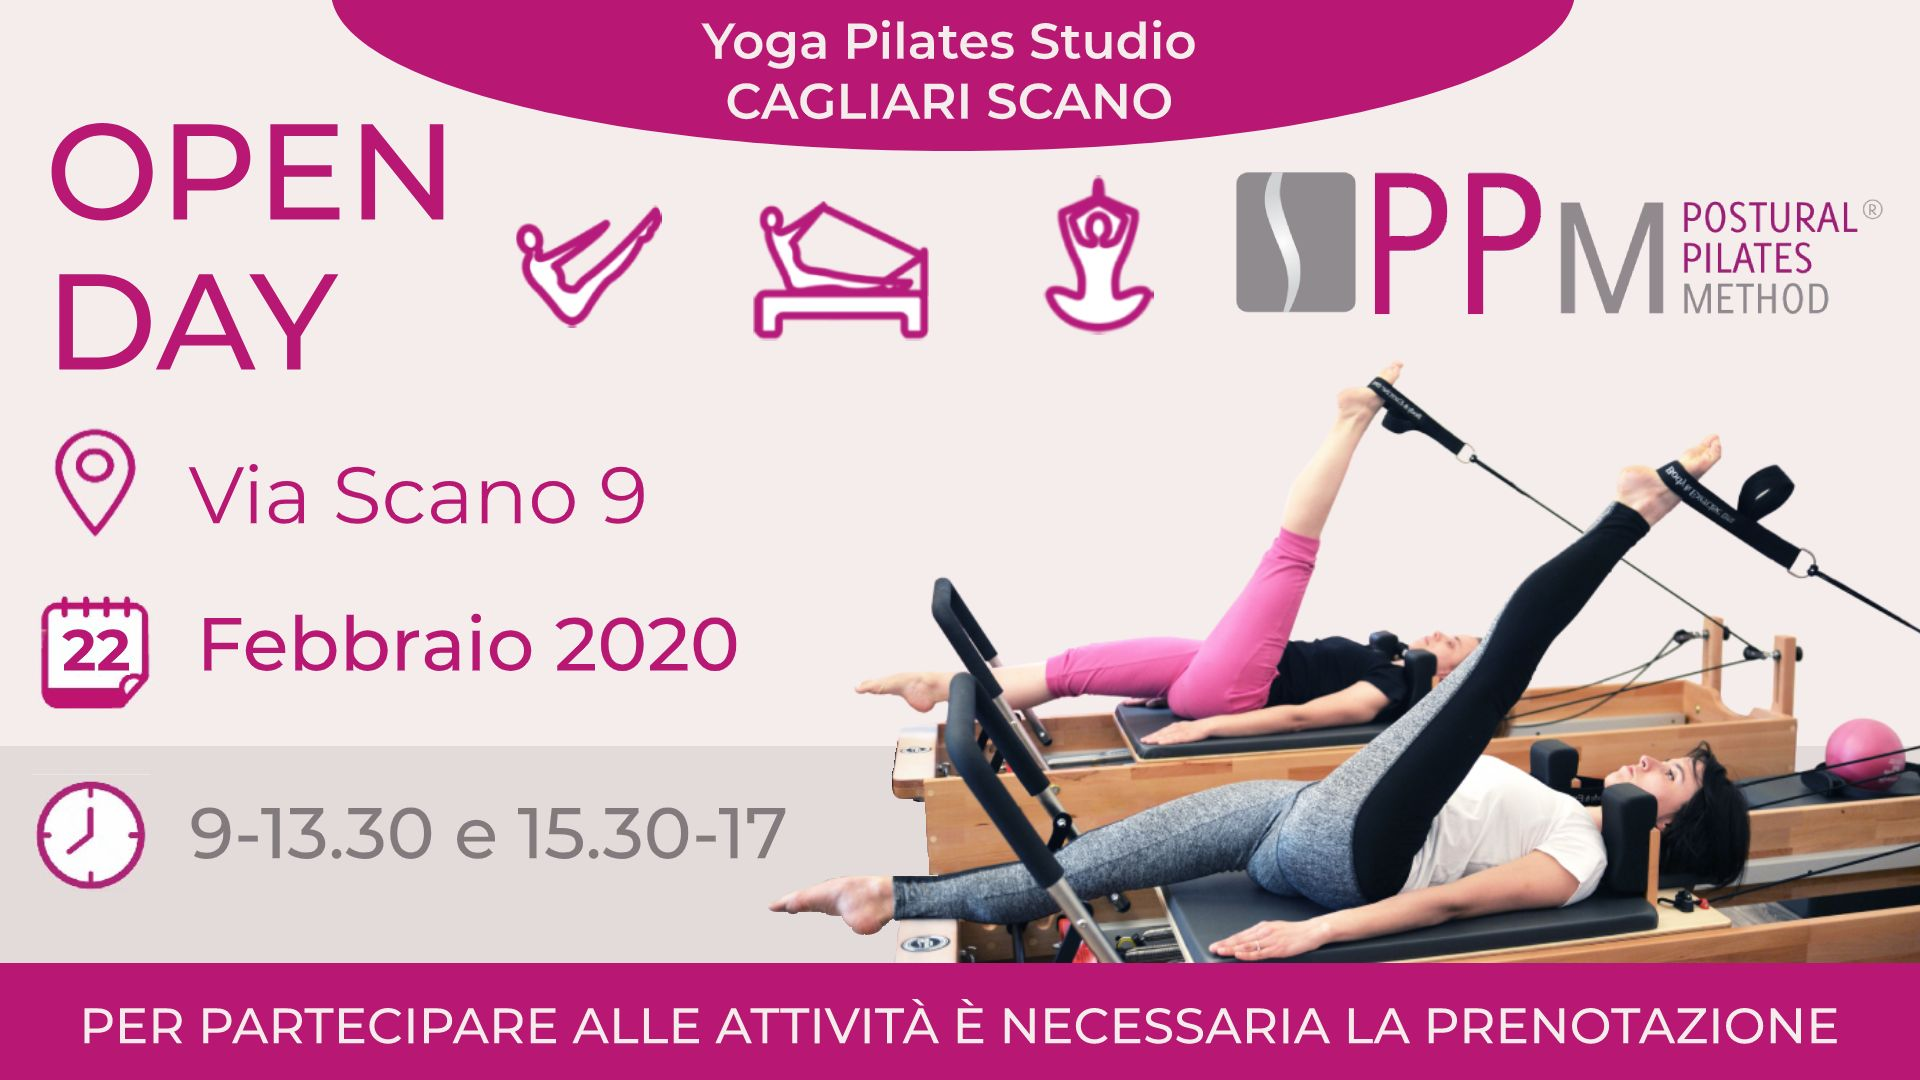 OPEN DAY SCANO